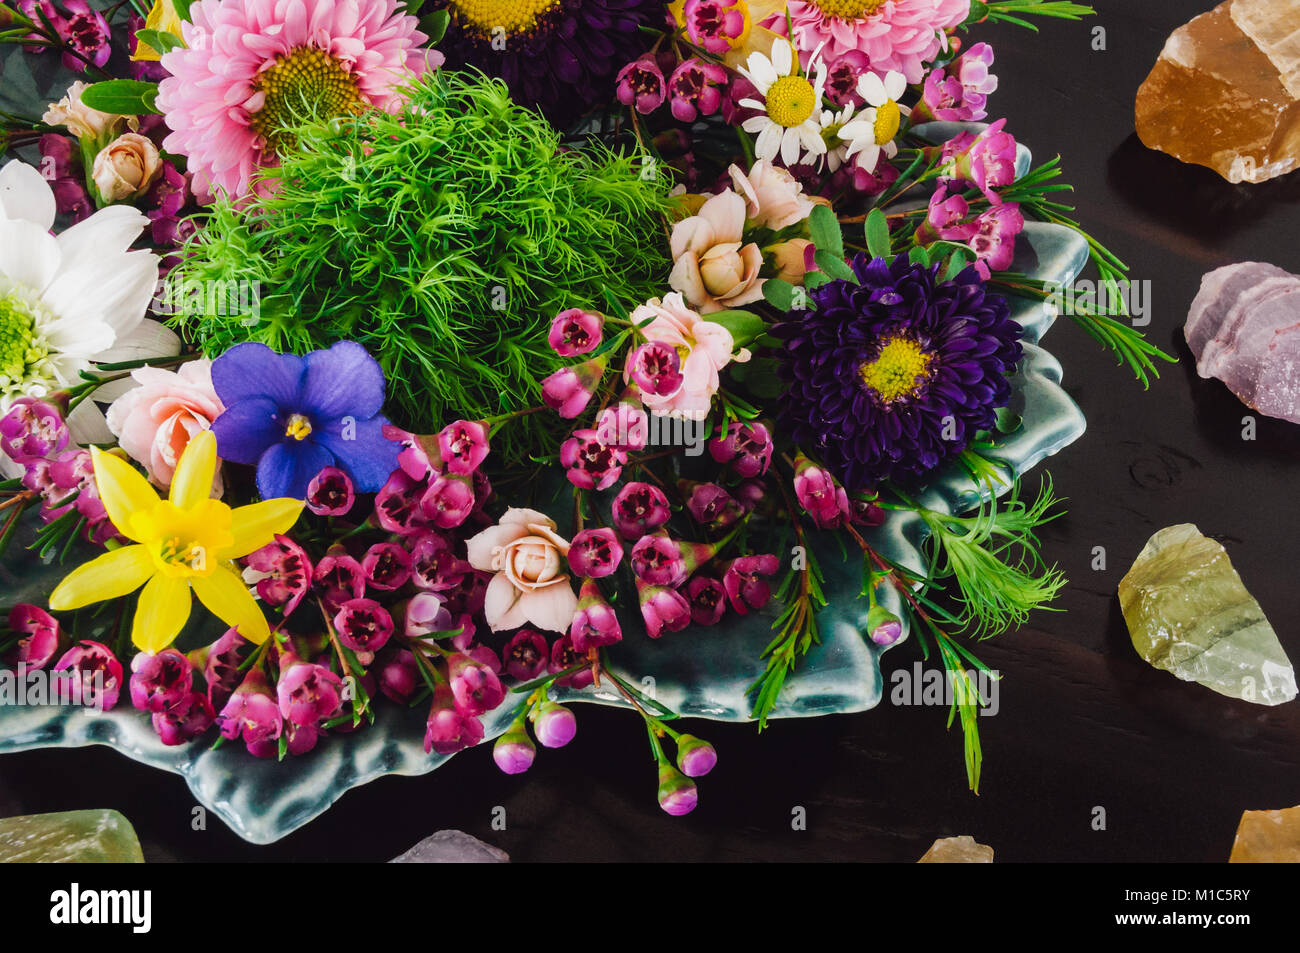 Assorted Spring Flowers on Dark Table with Honey Calcite, Amethyst and Green Calcite - Stock Image